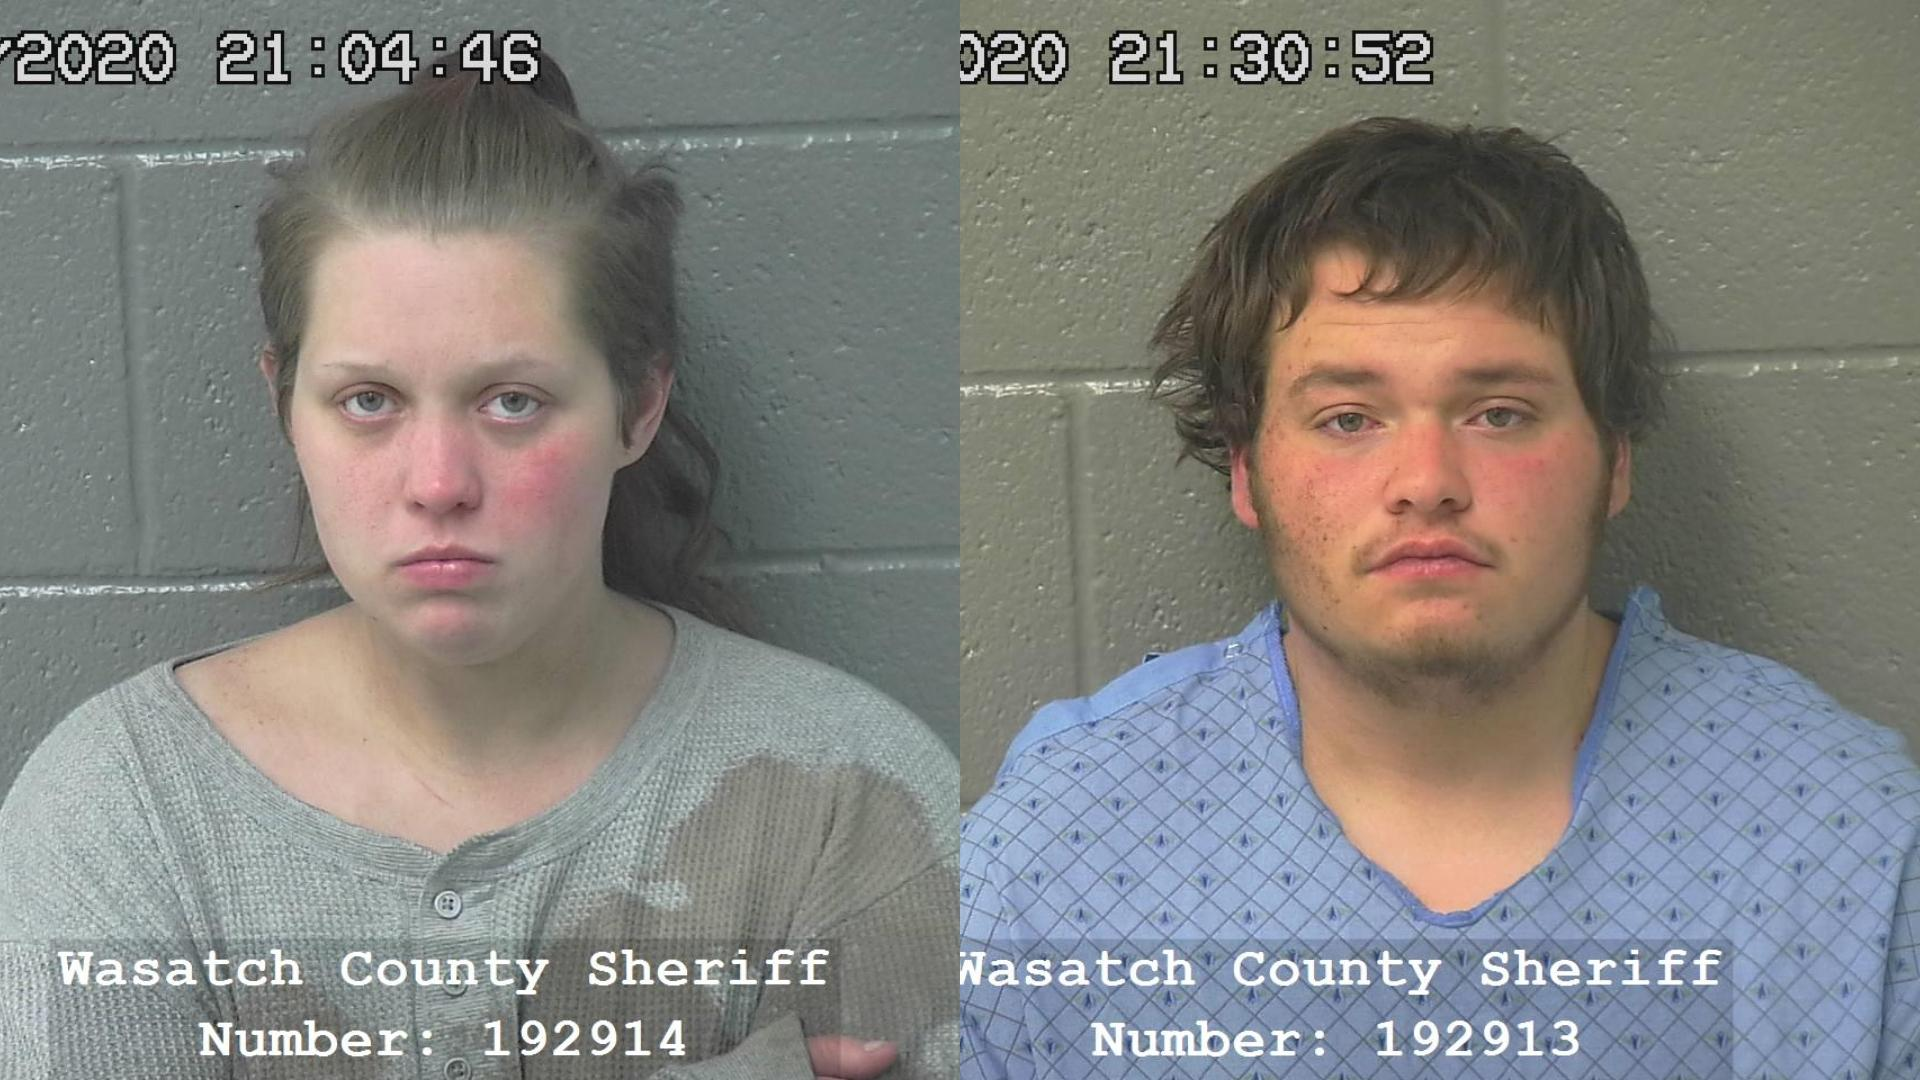 Brandon Rautanen (L) and Maryah King (R) were arrested in connection with the police chase. (Photo: Wasatch County Jail)